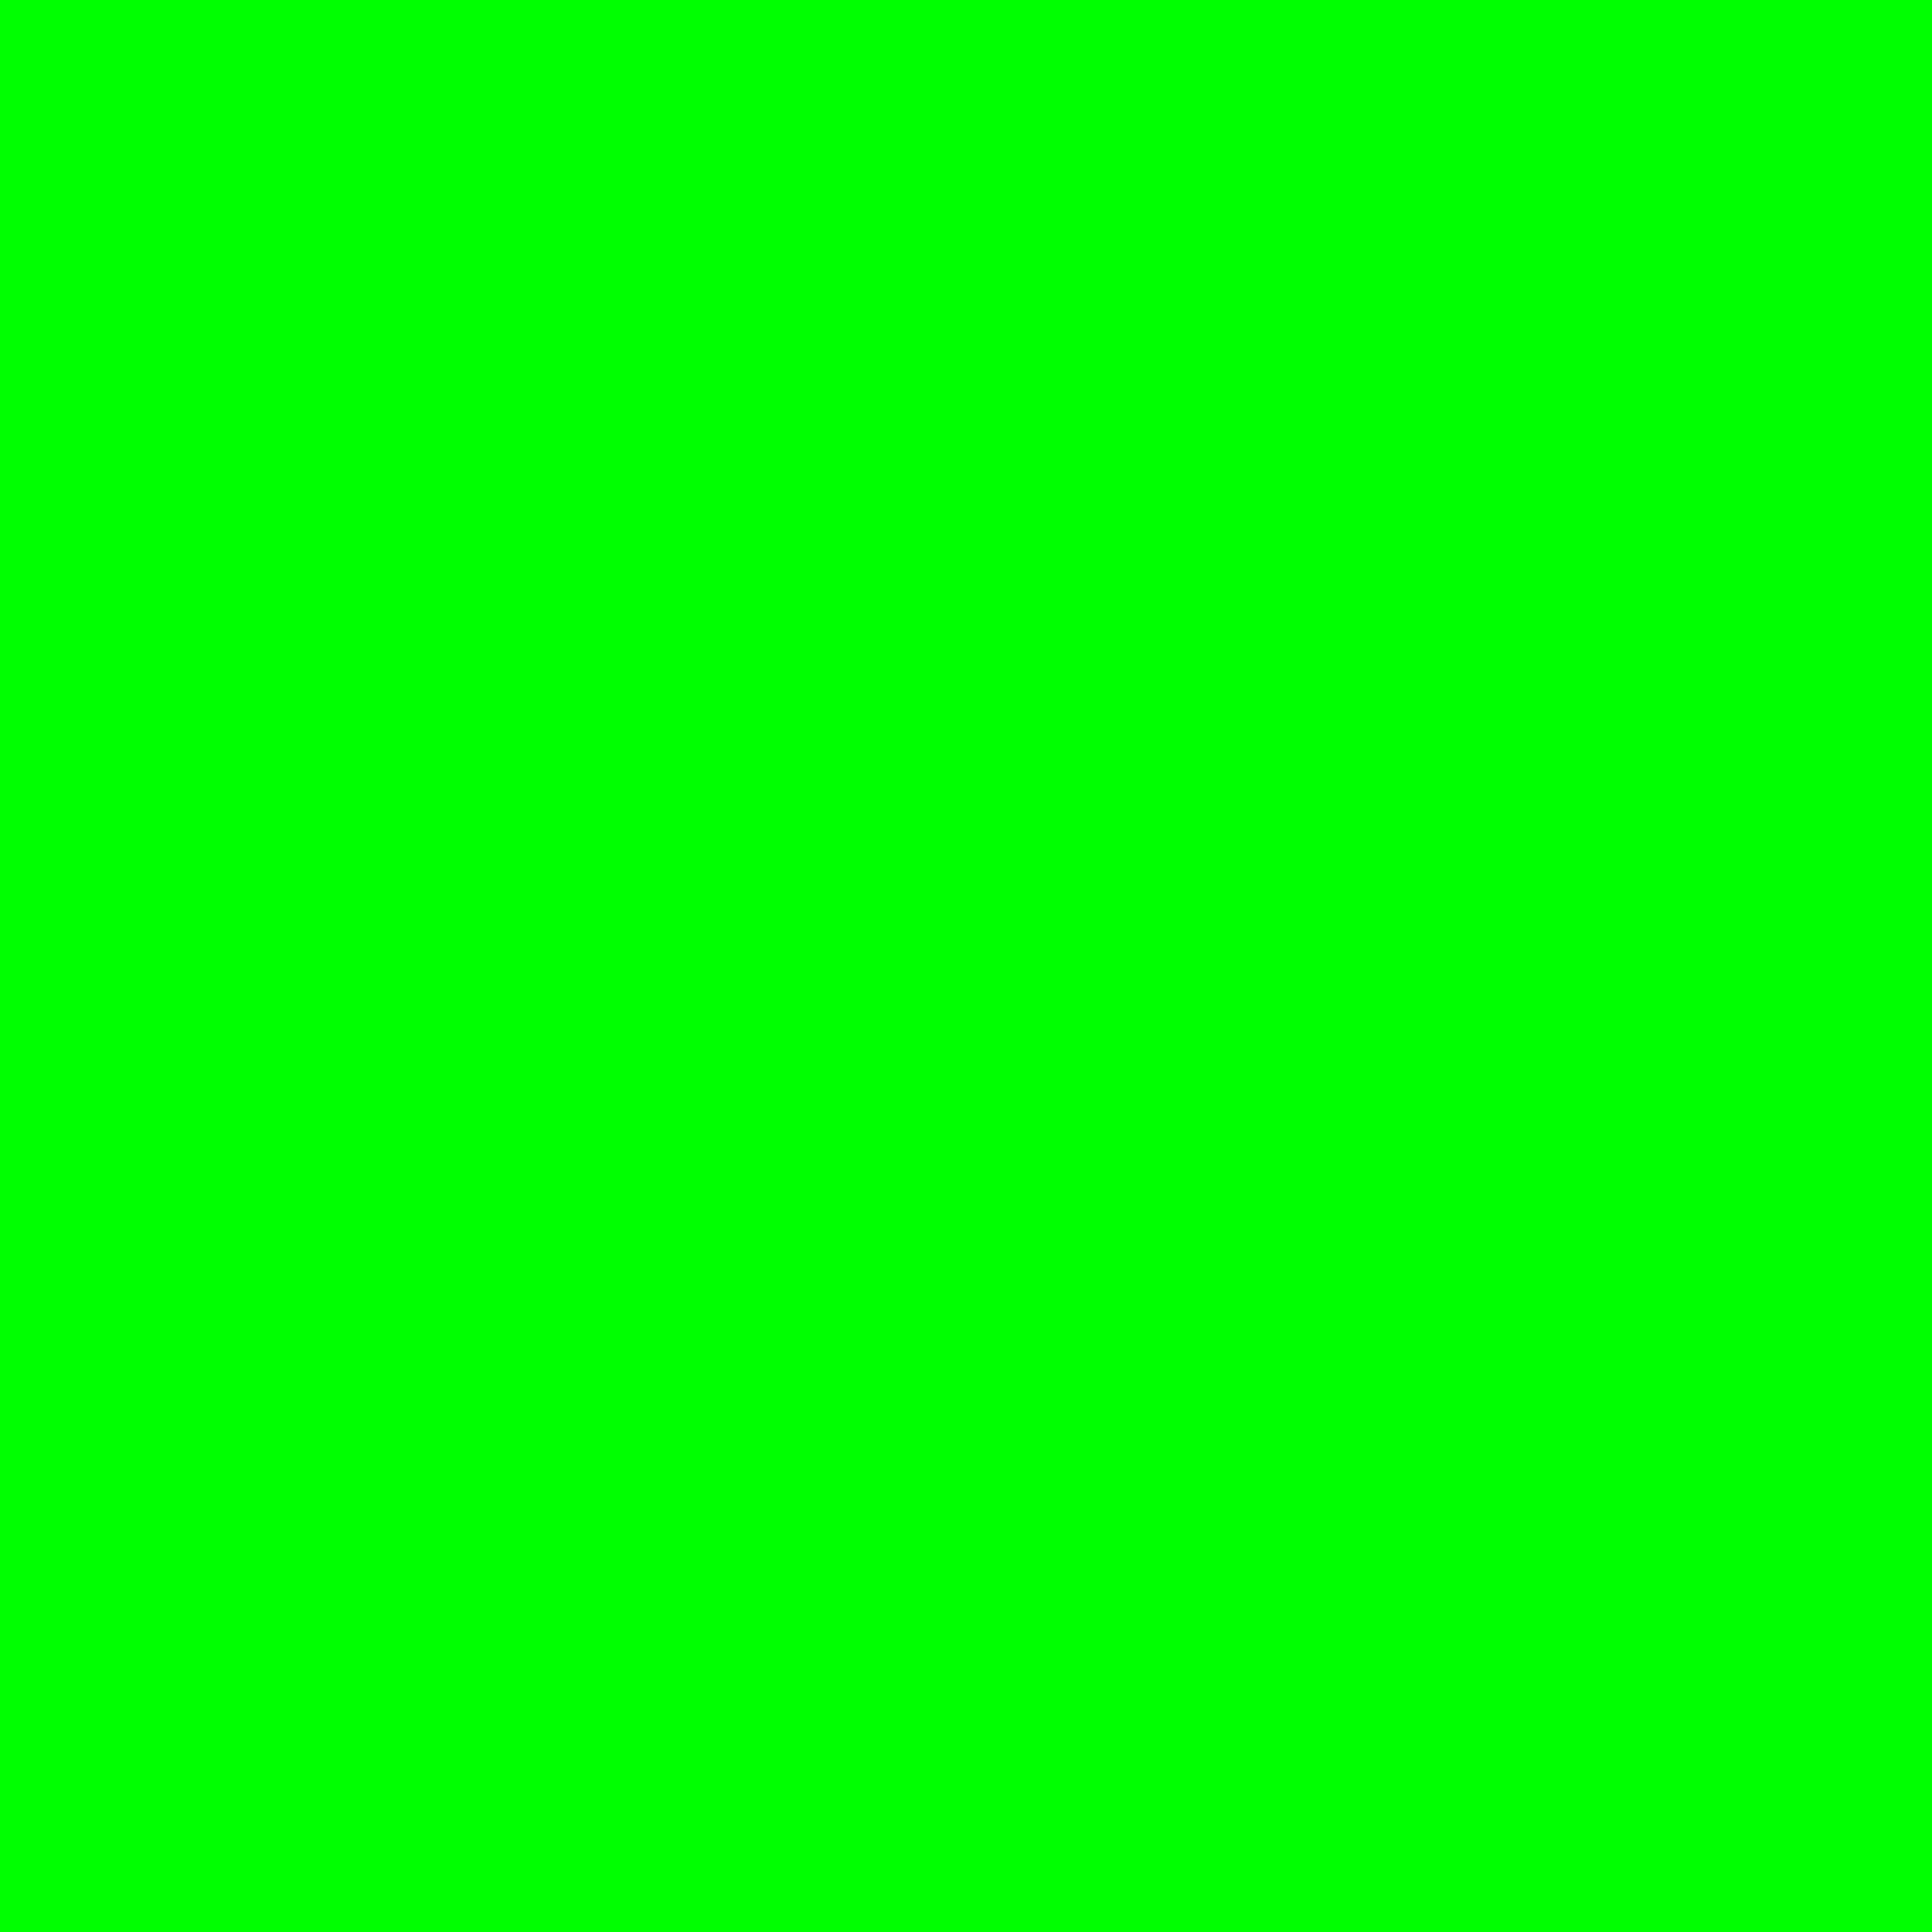 2048x2048 Electric Green Solid Color Background